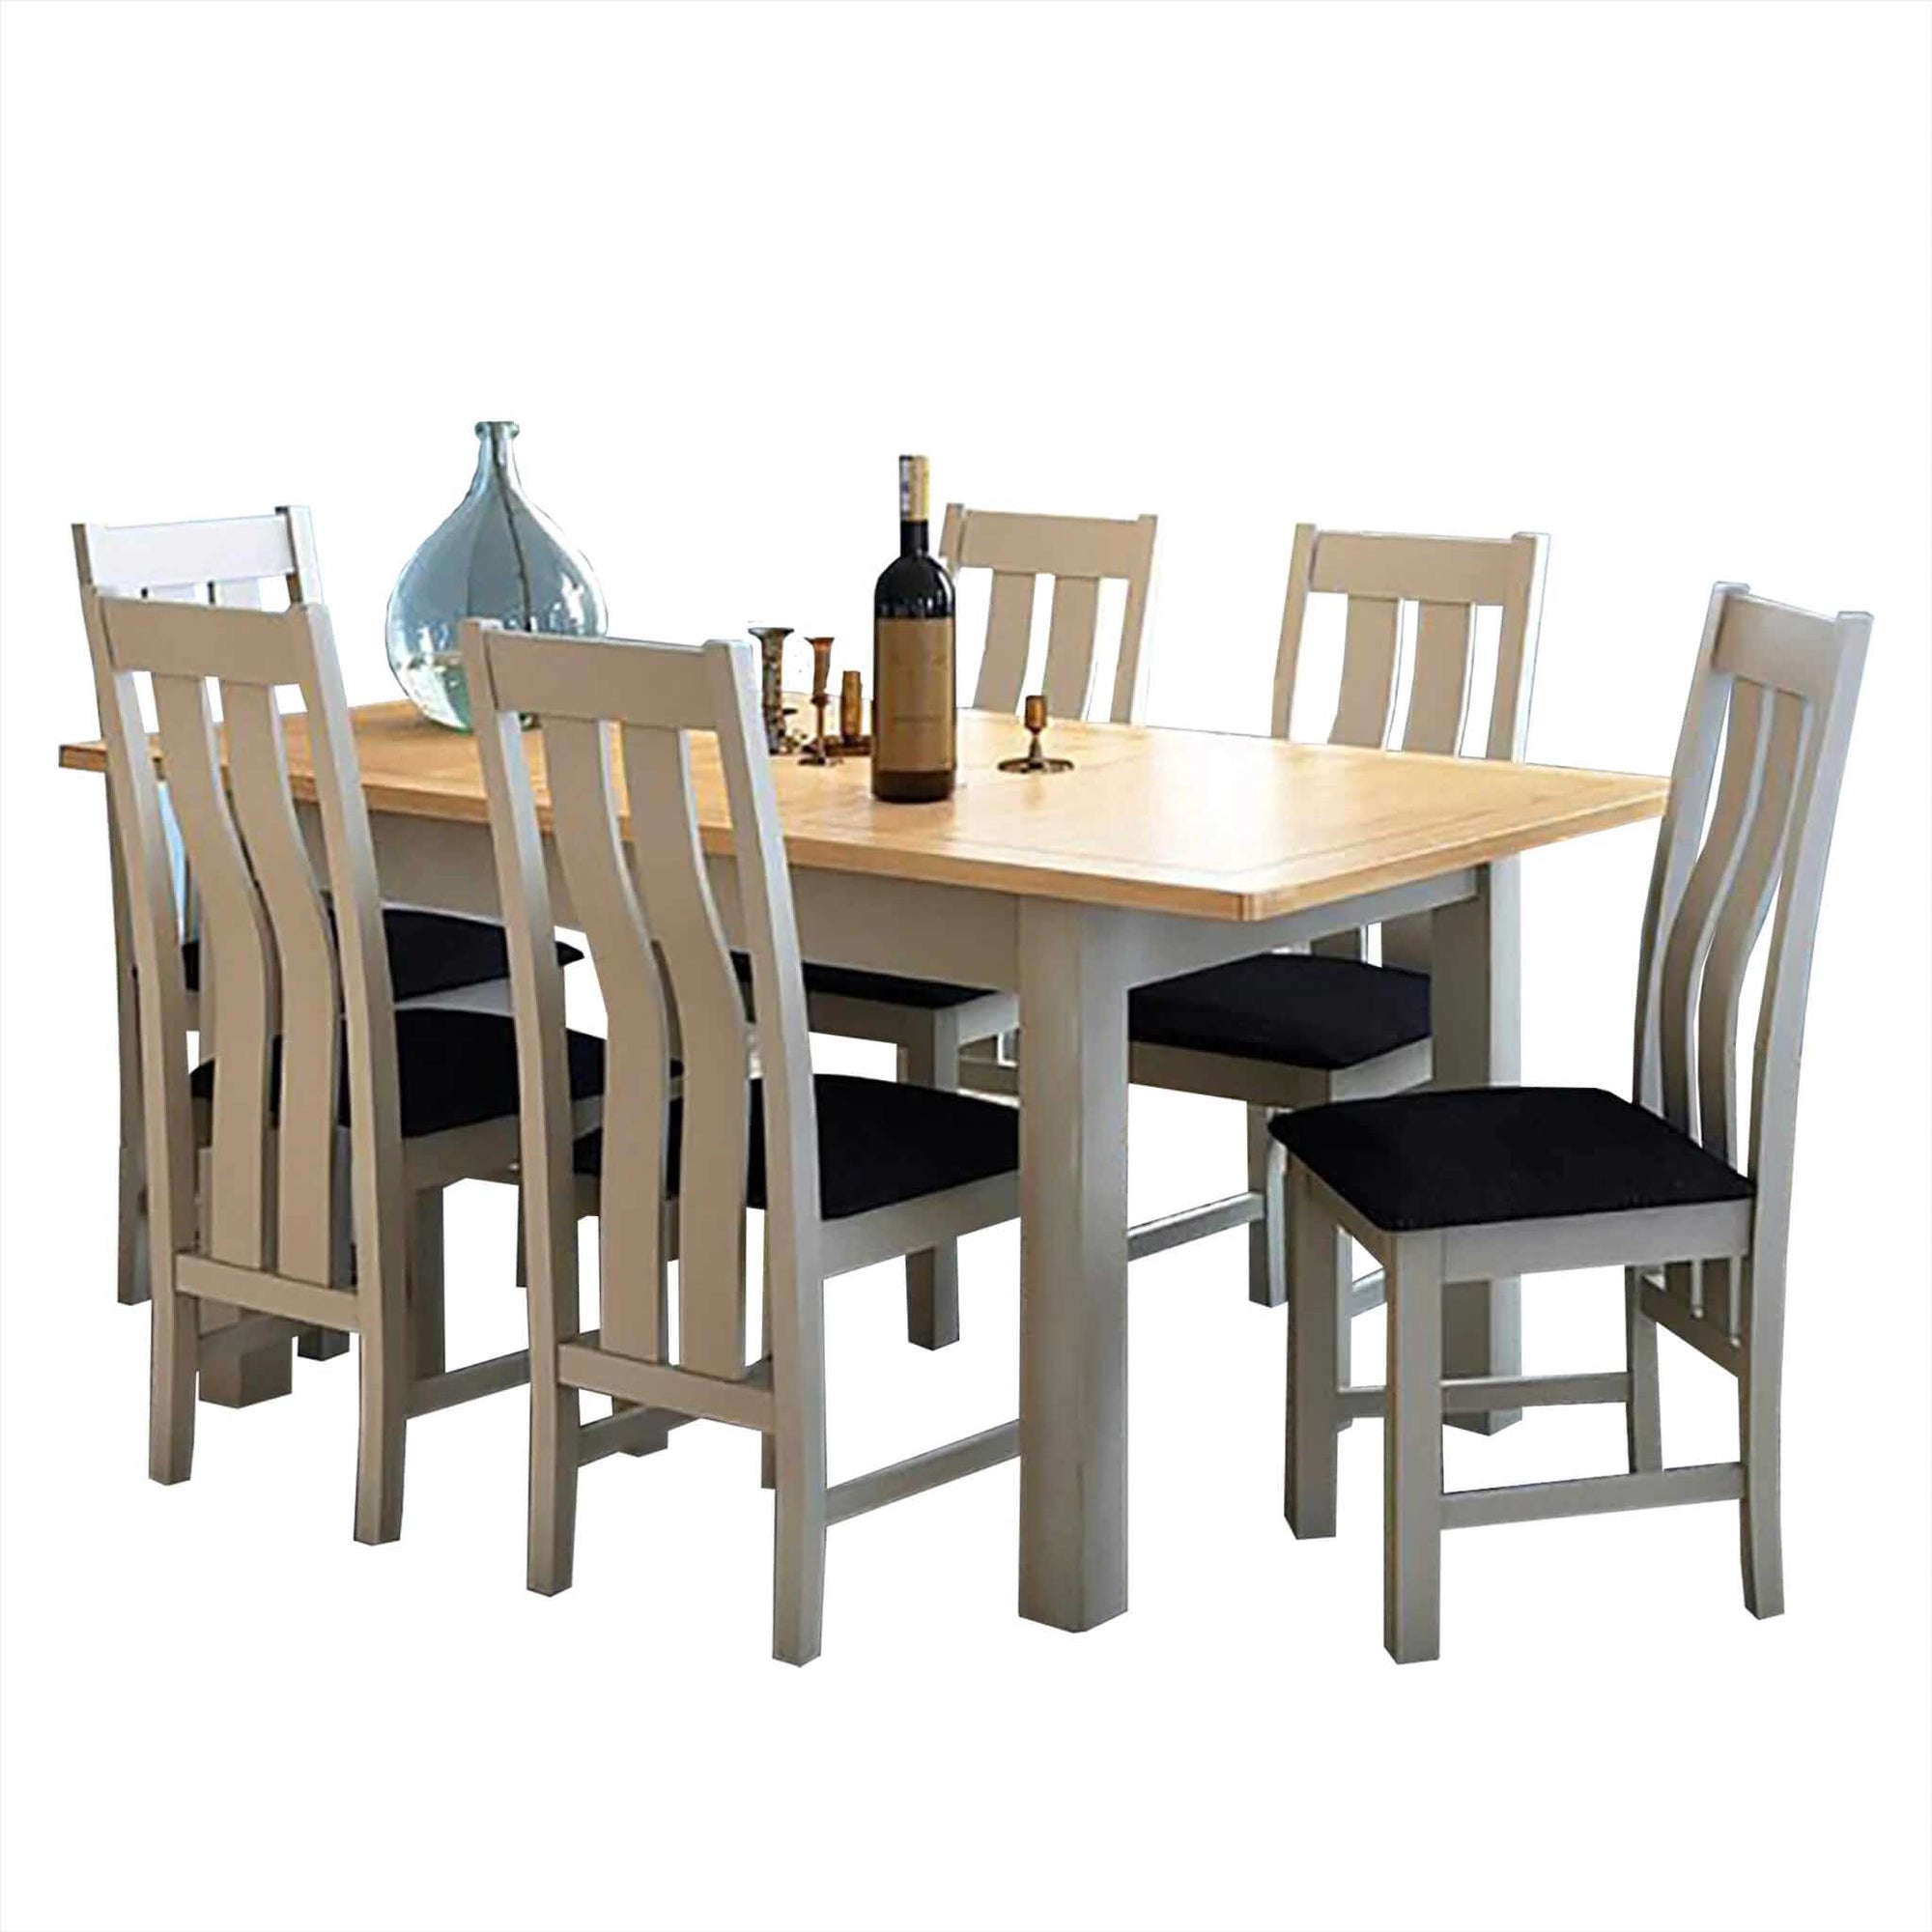 Padstow Stone Grey Ext Dining Set   9 x Chairs   Roseland Furniture